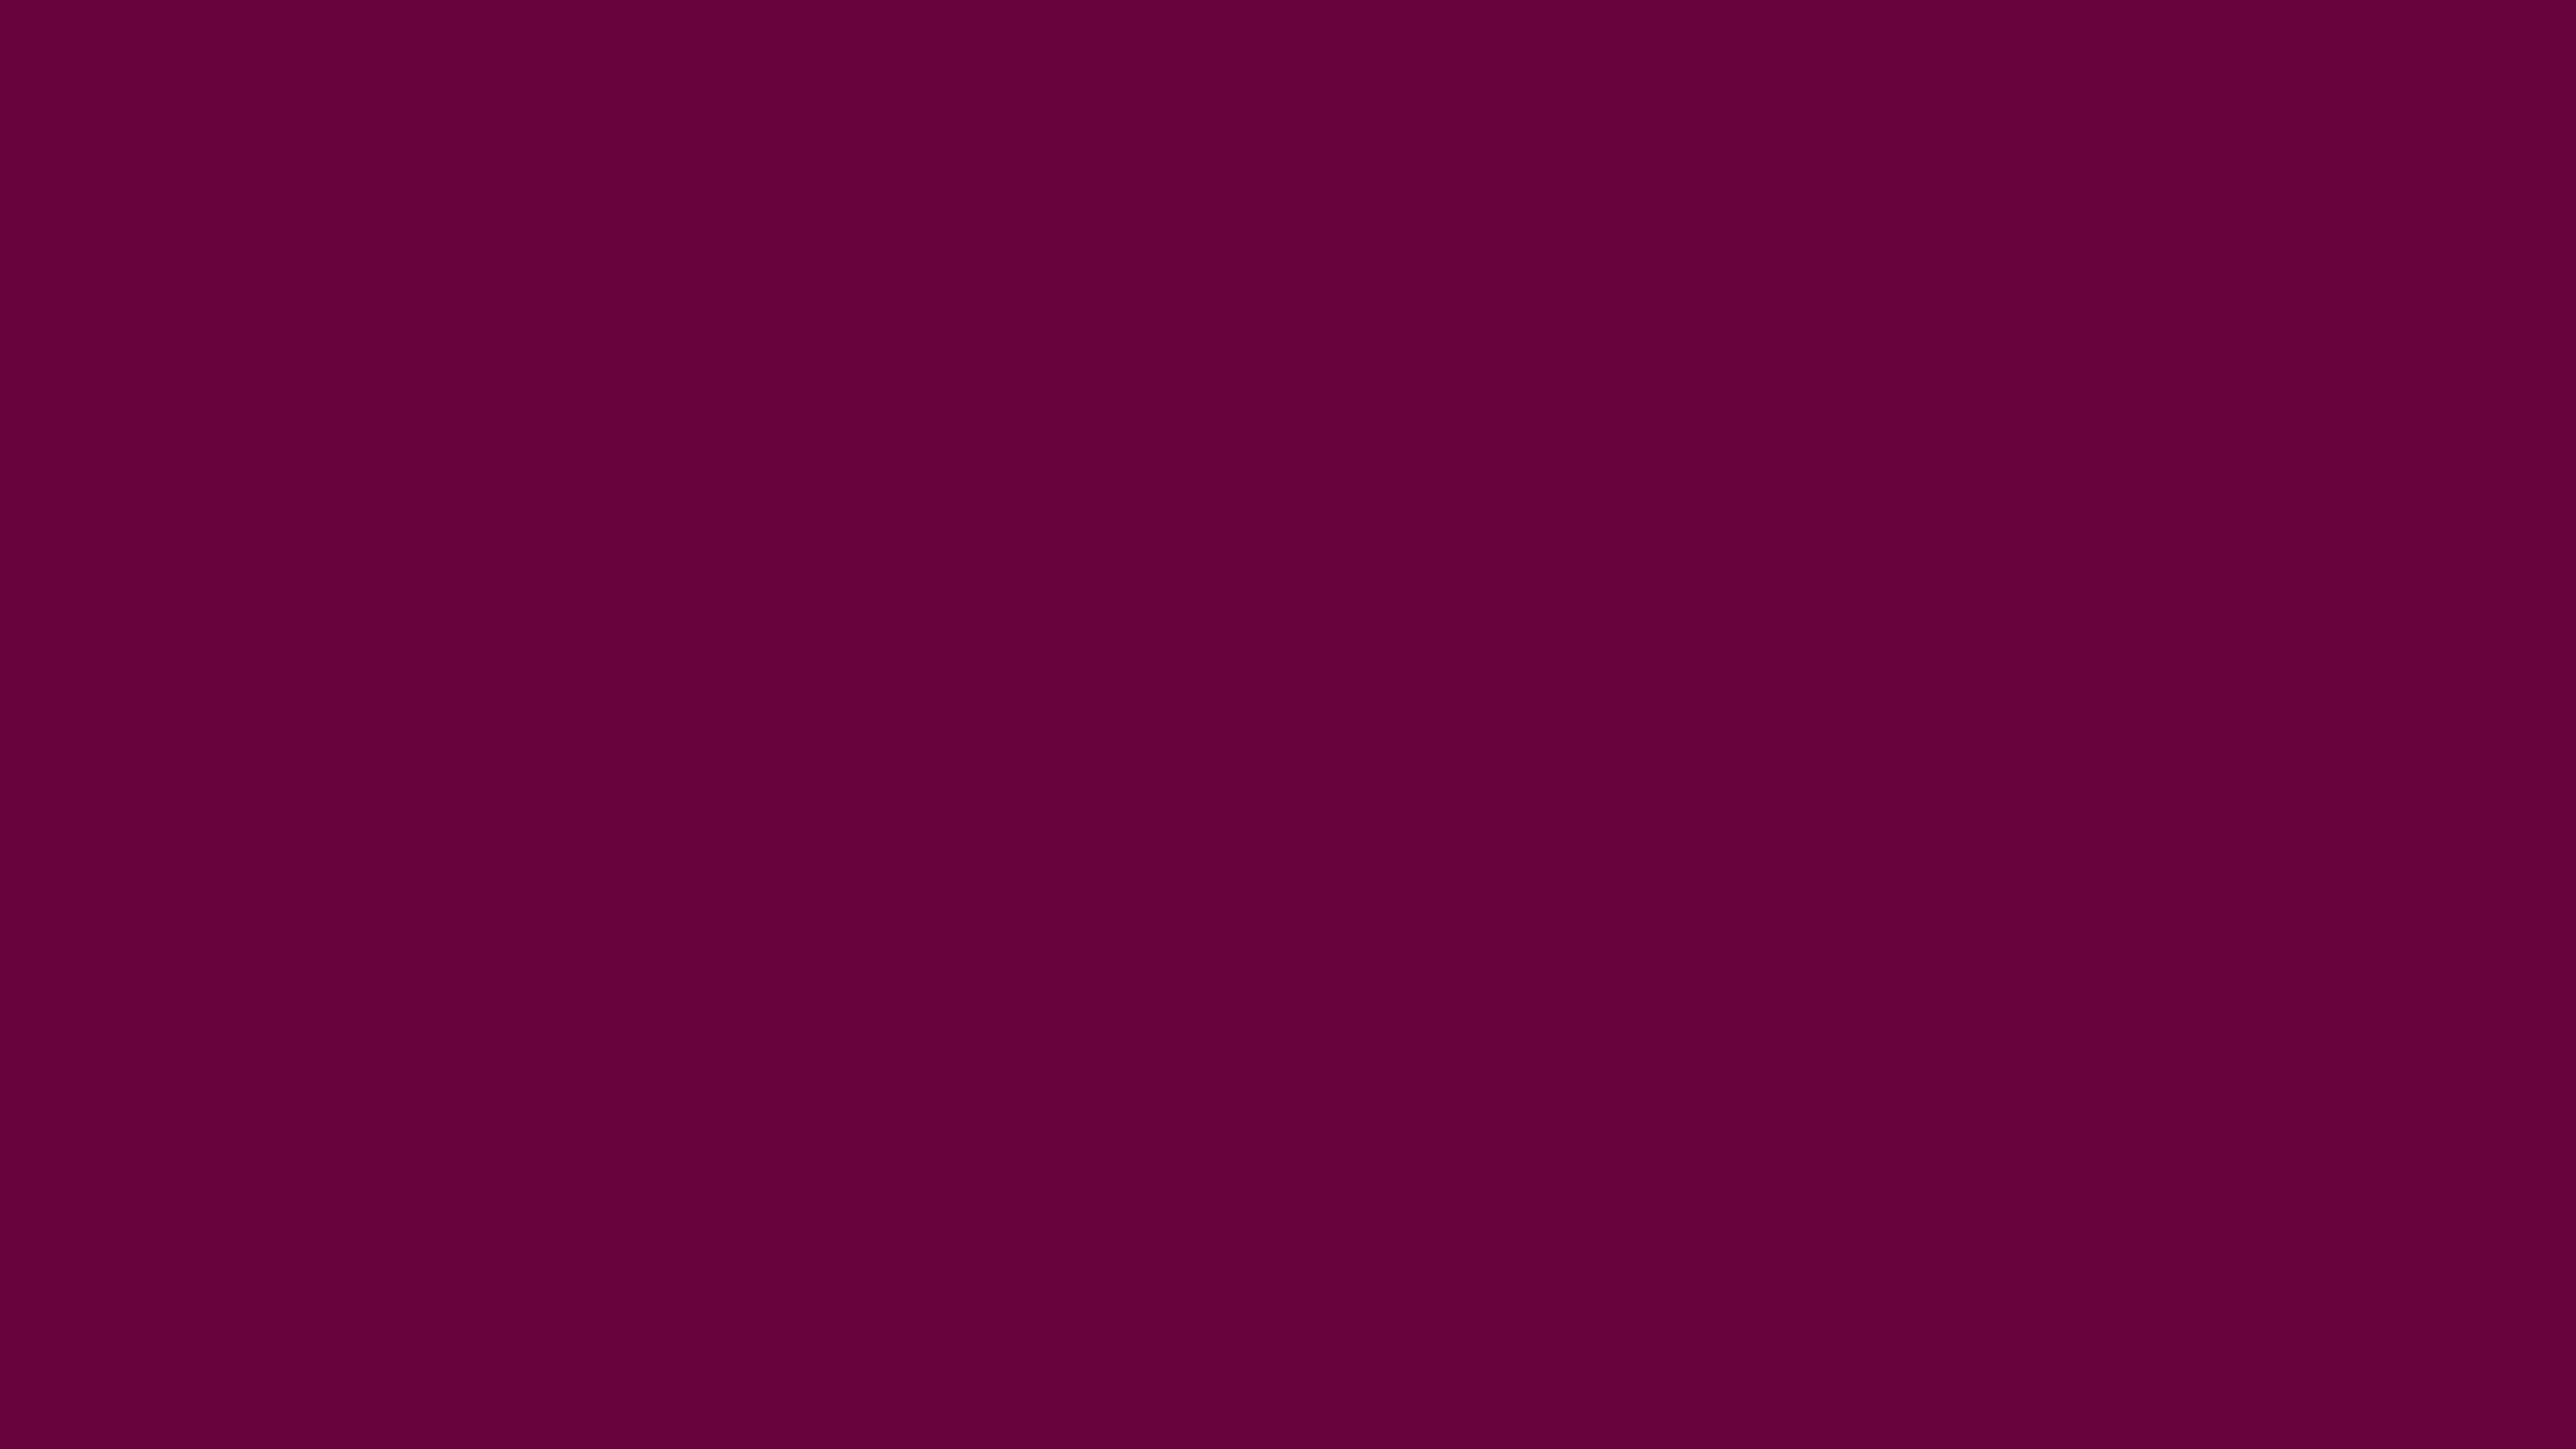 4096x2304 Tyrian Purple Solid Color Background